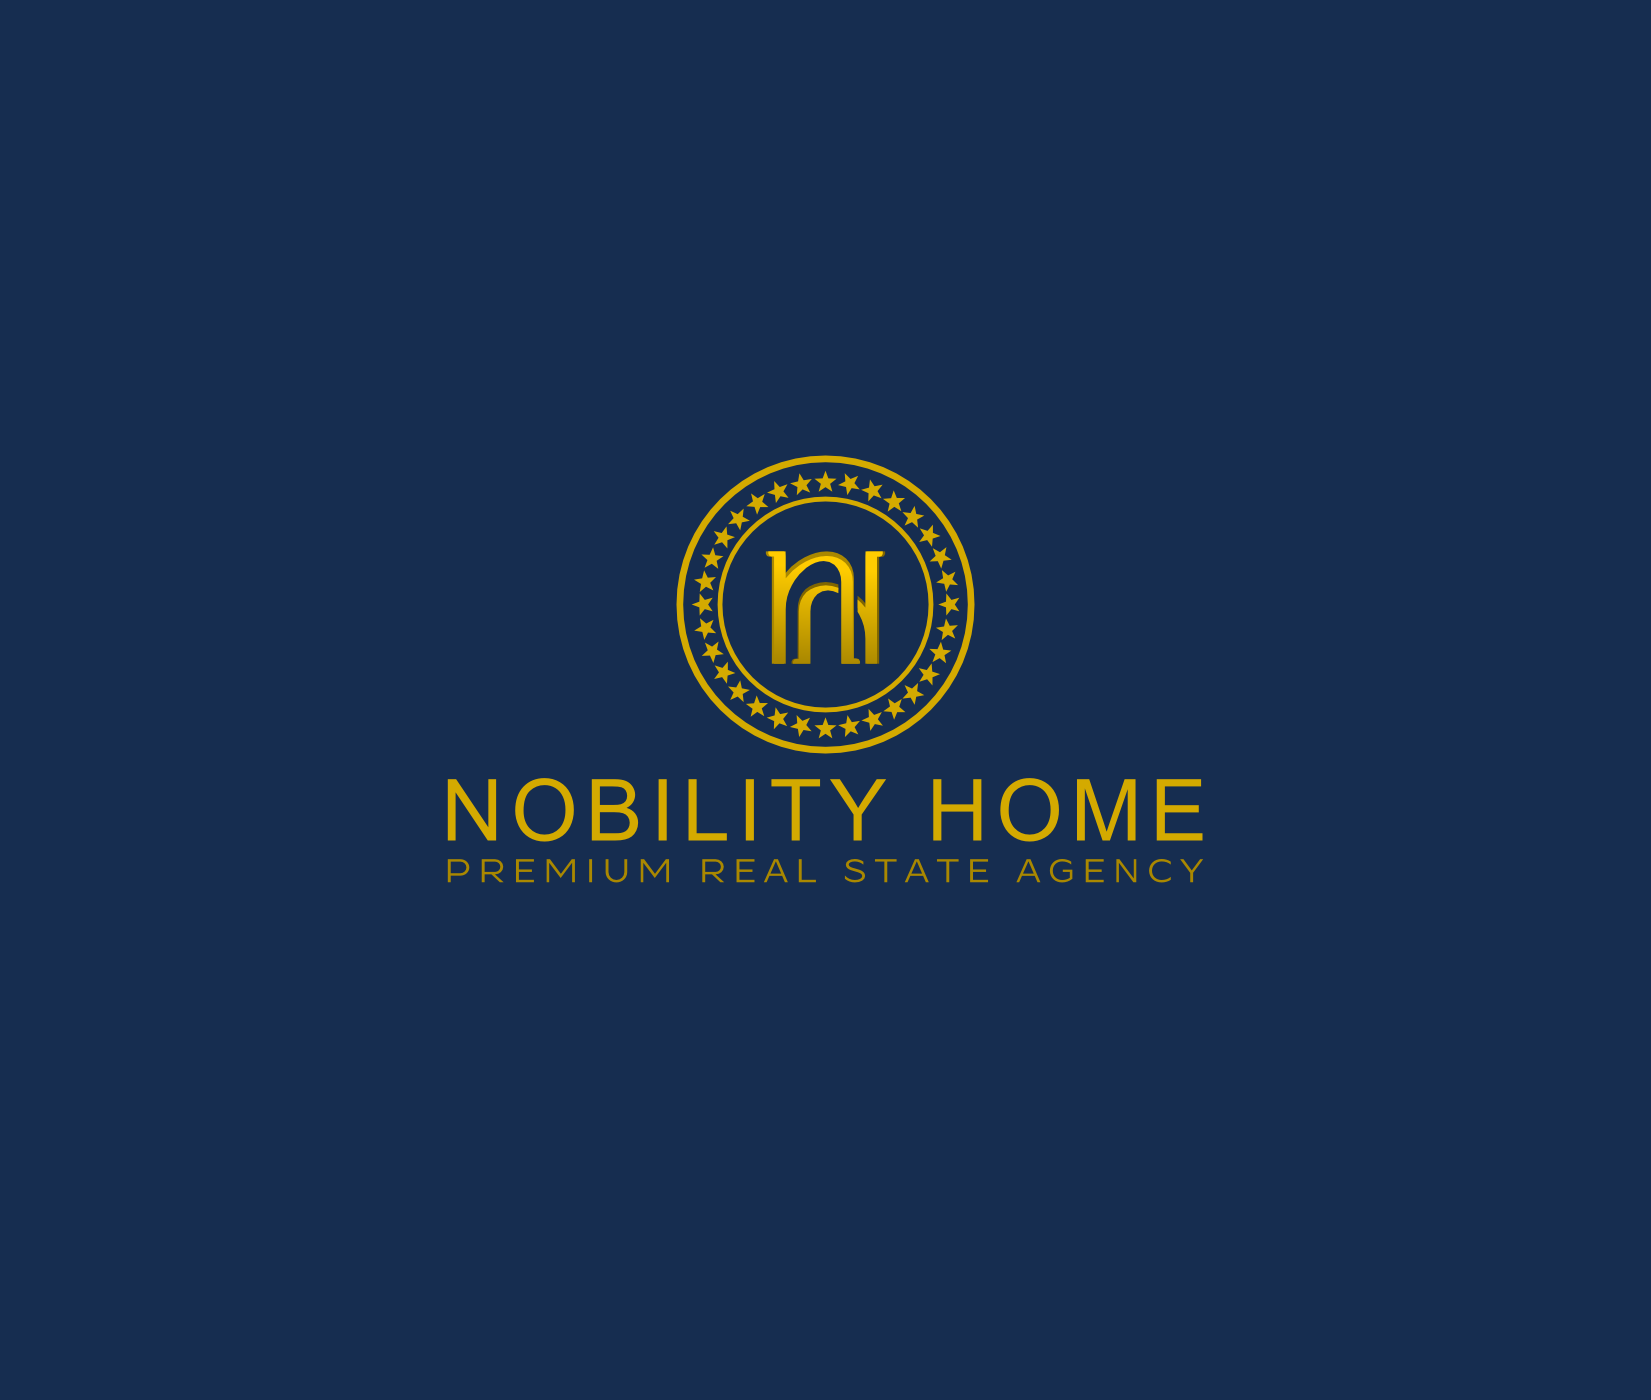 We announce a contest for our premium real estate company